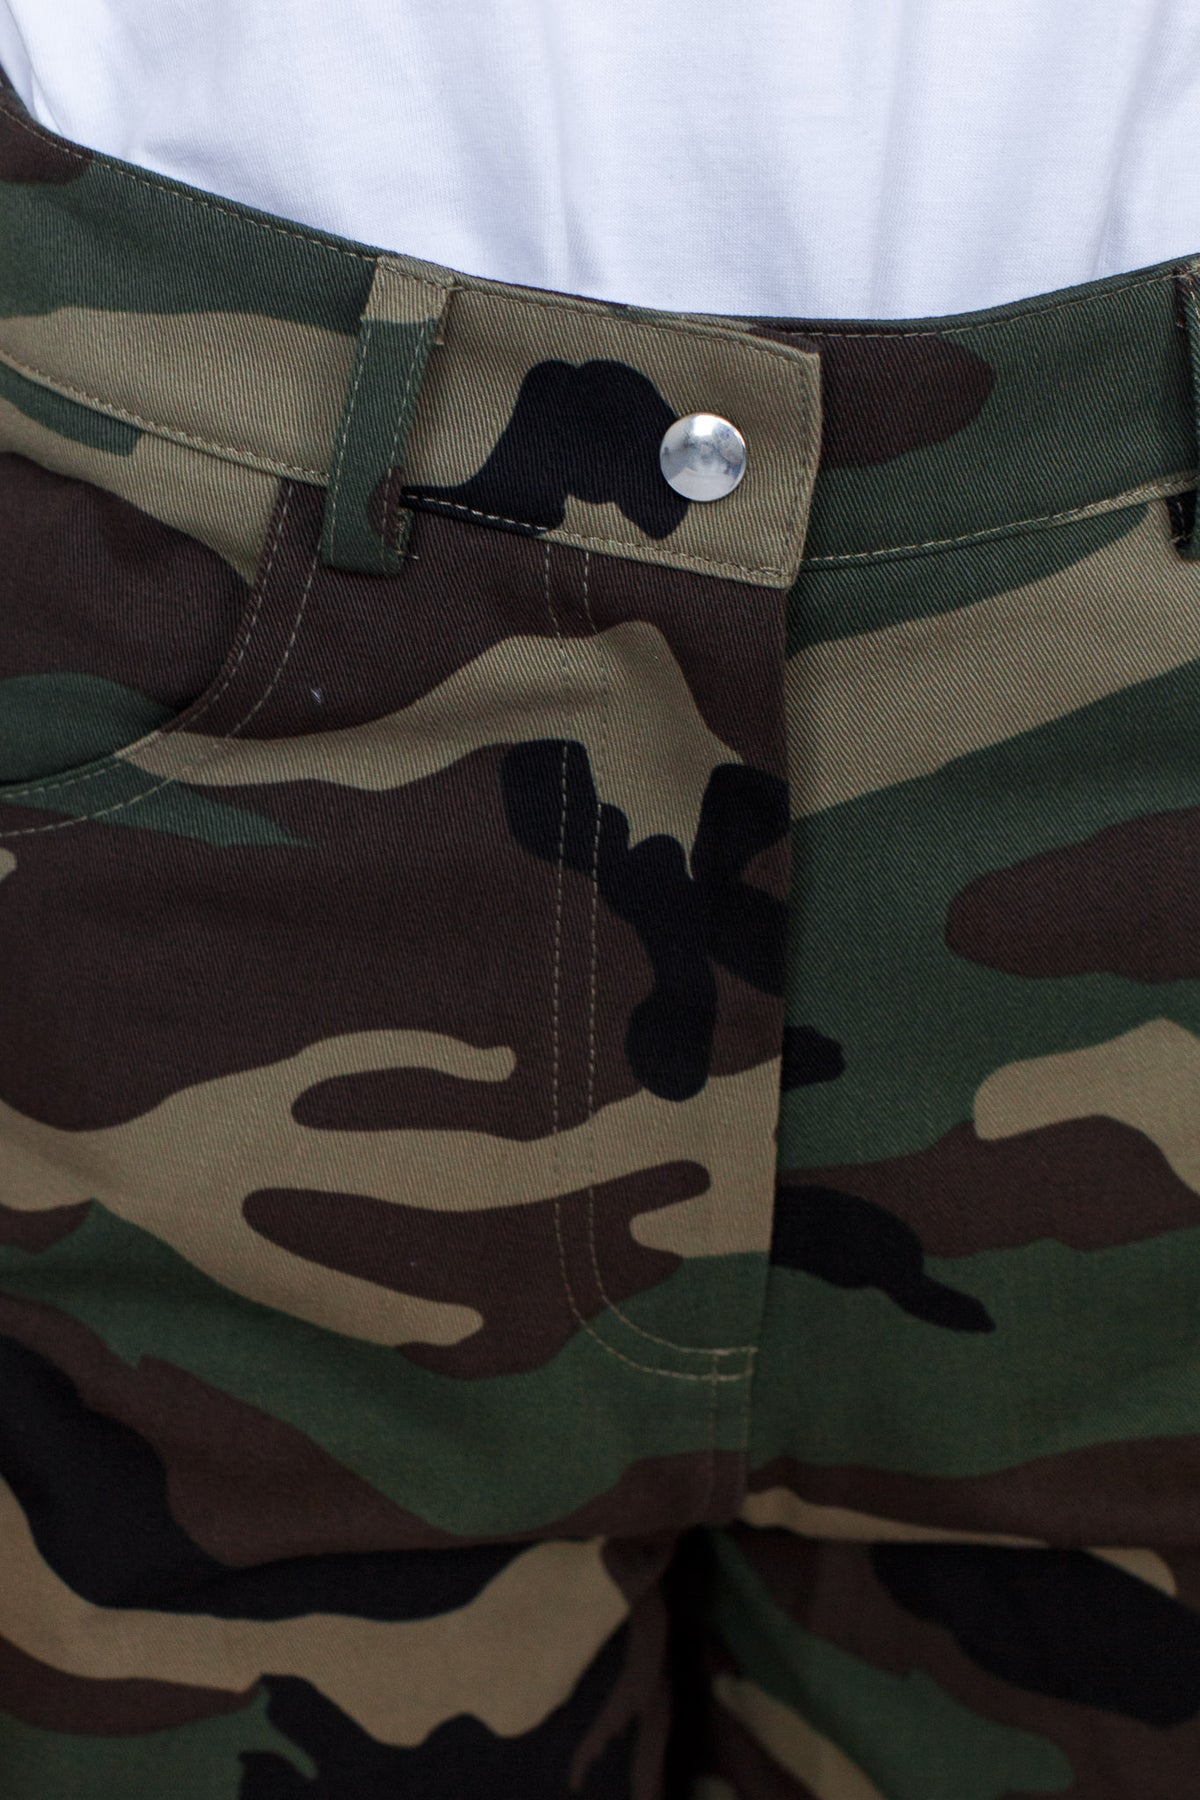 Camo-Series-Camouflage-Print-Shorts-Bottoms-Clothing-le-slap-details-closeup.jpg